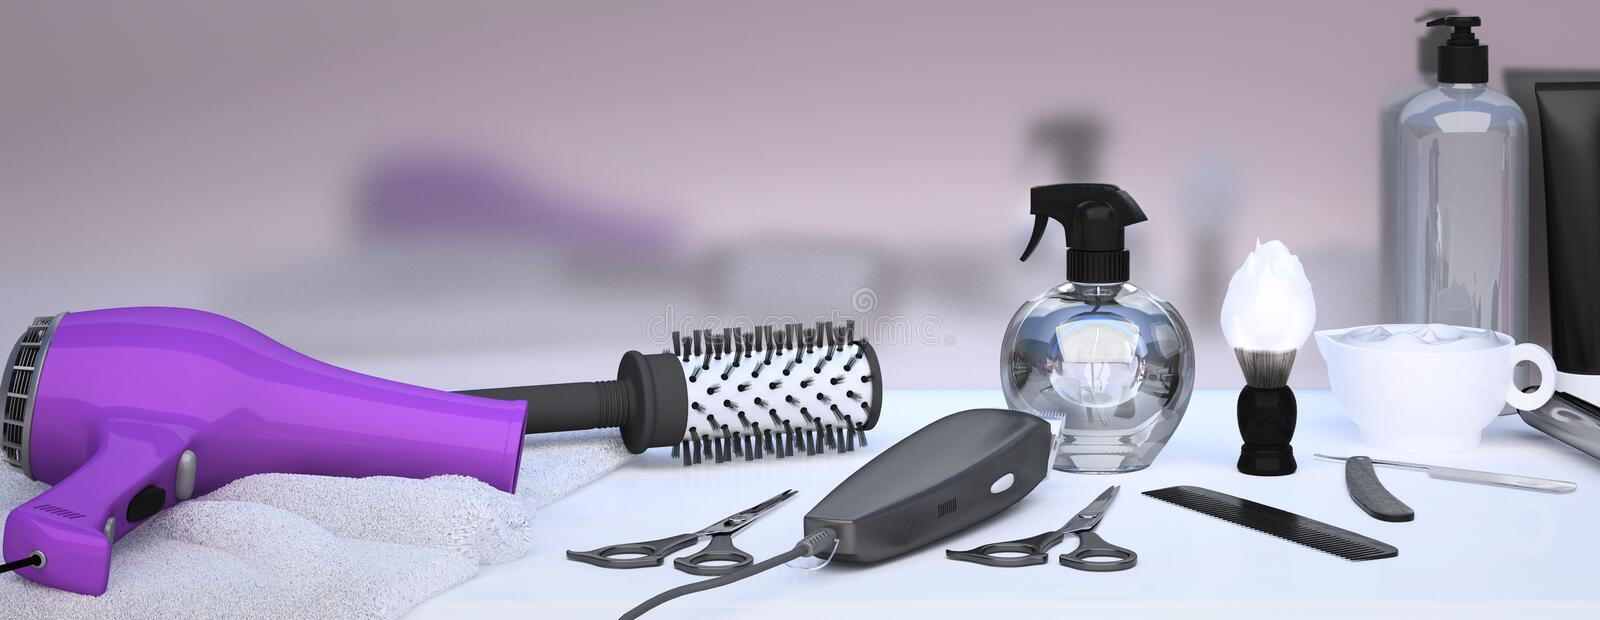 Set of professional hairdresser tools on light background. Table in barbershop. Working tool of barber master stock image